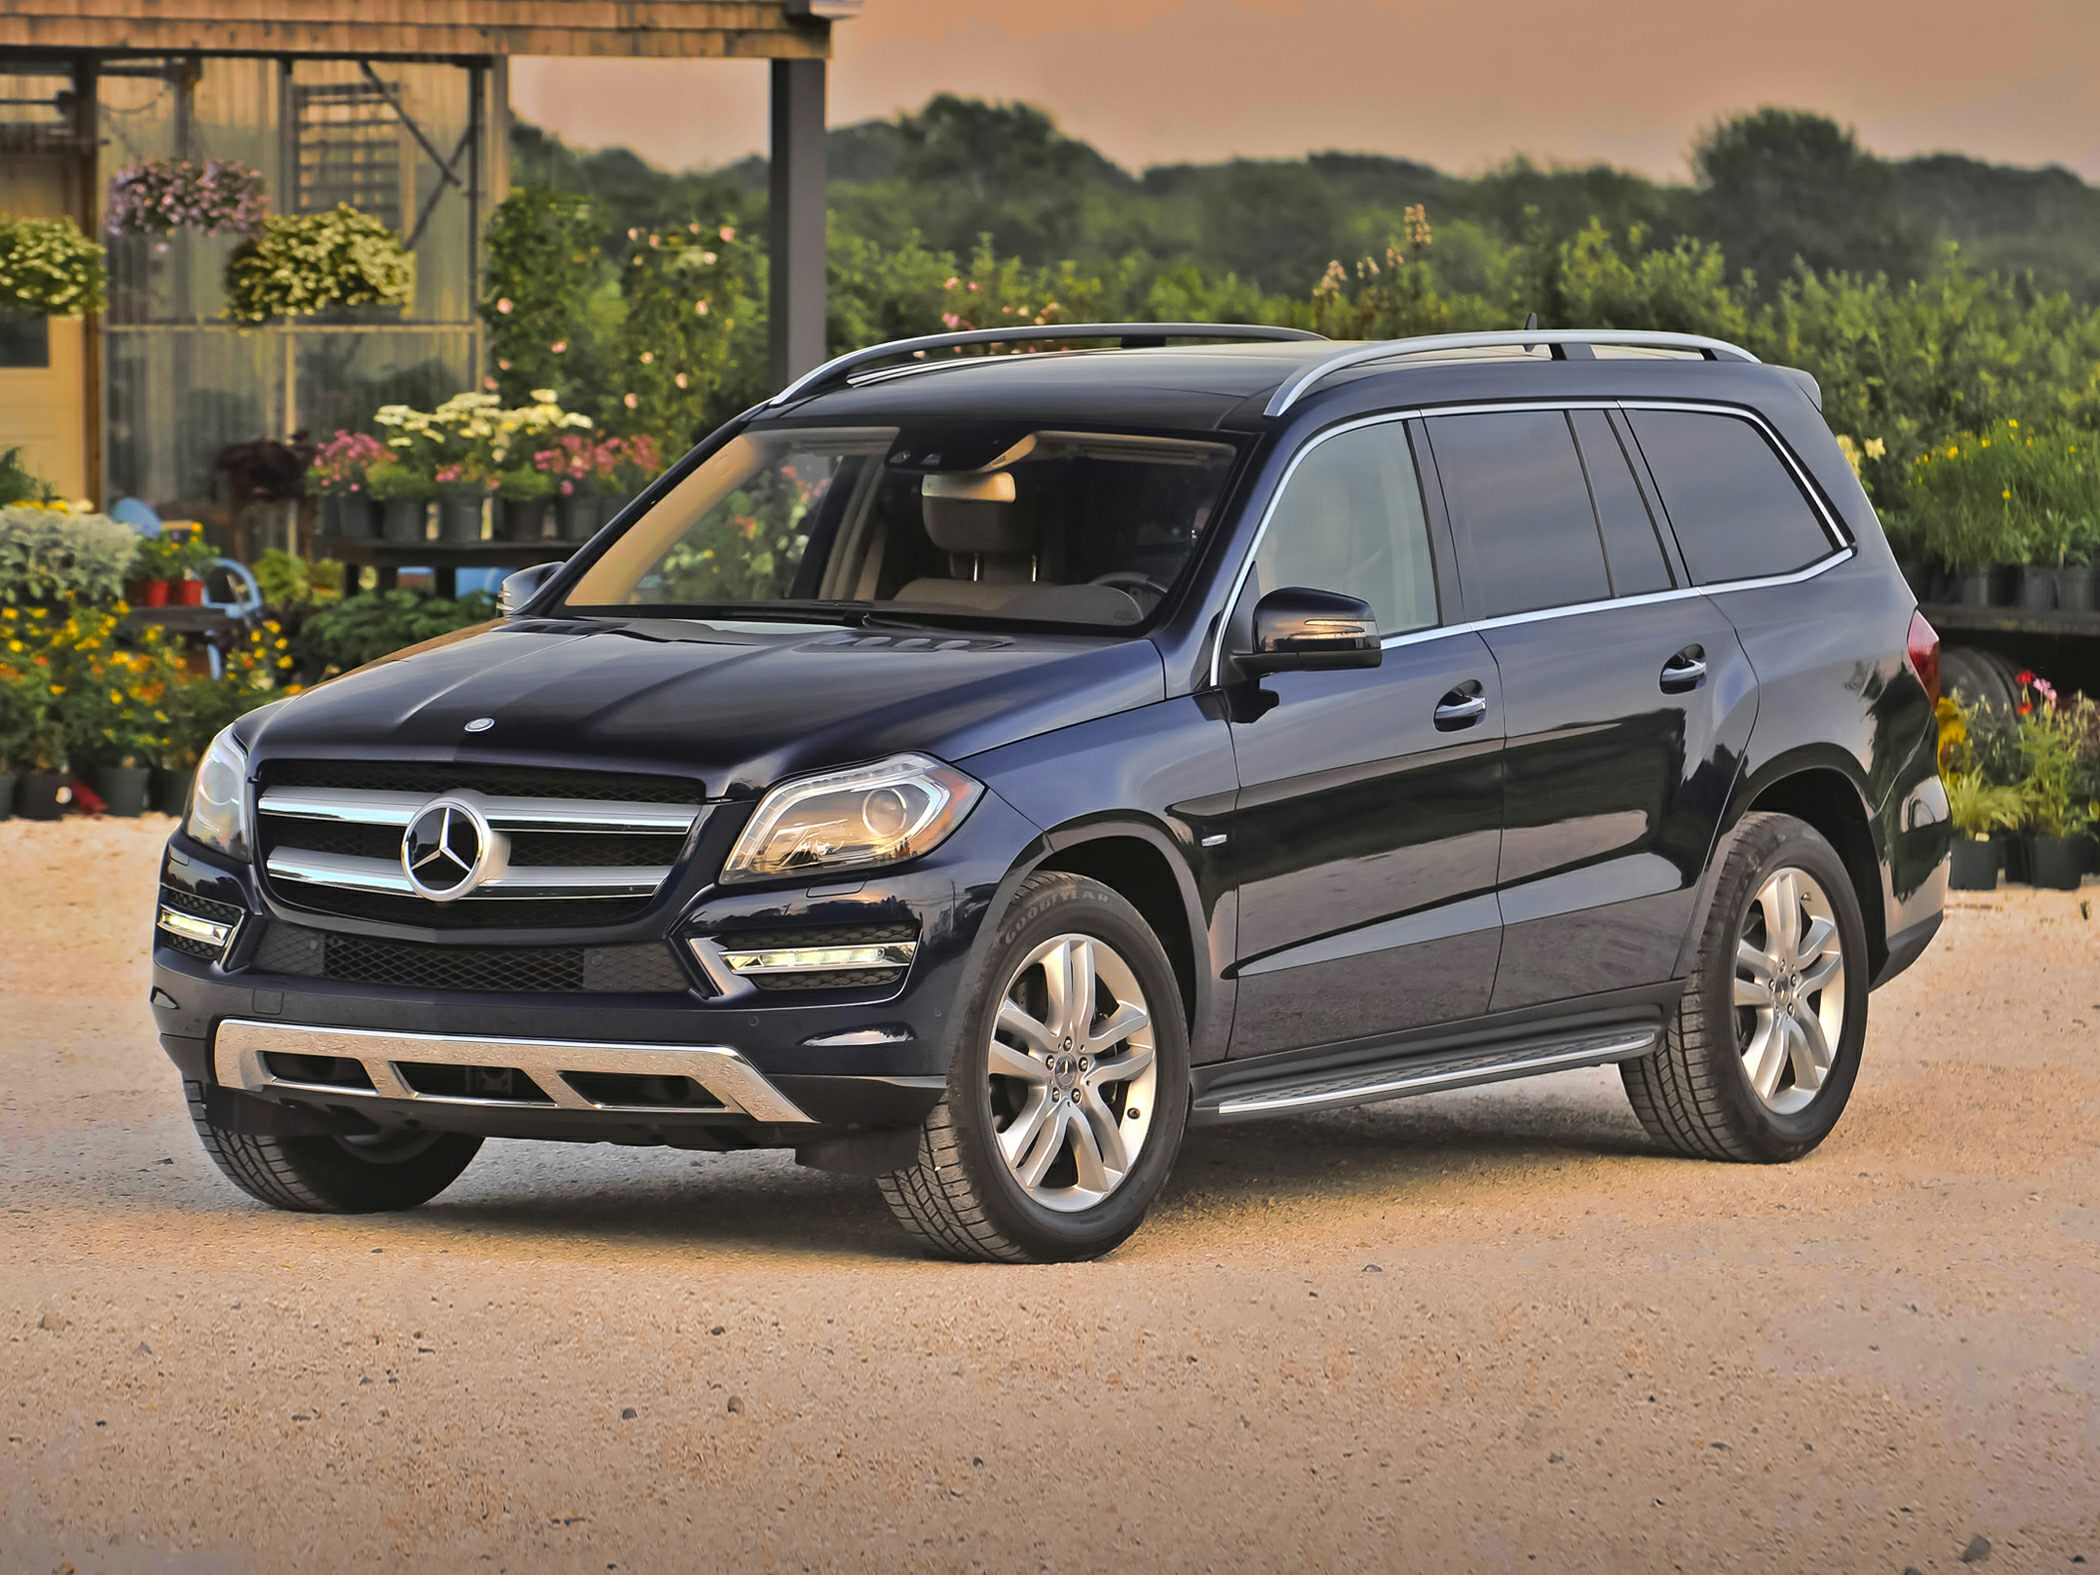 2014 mercedes-benz gl450